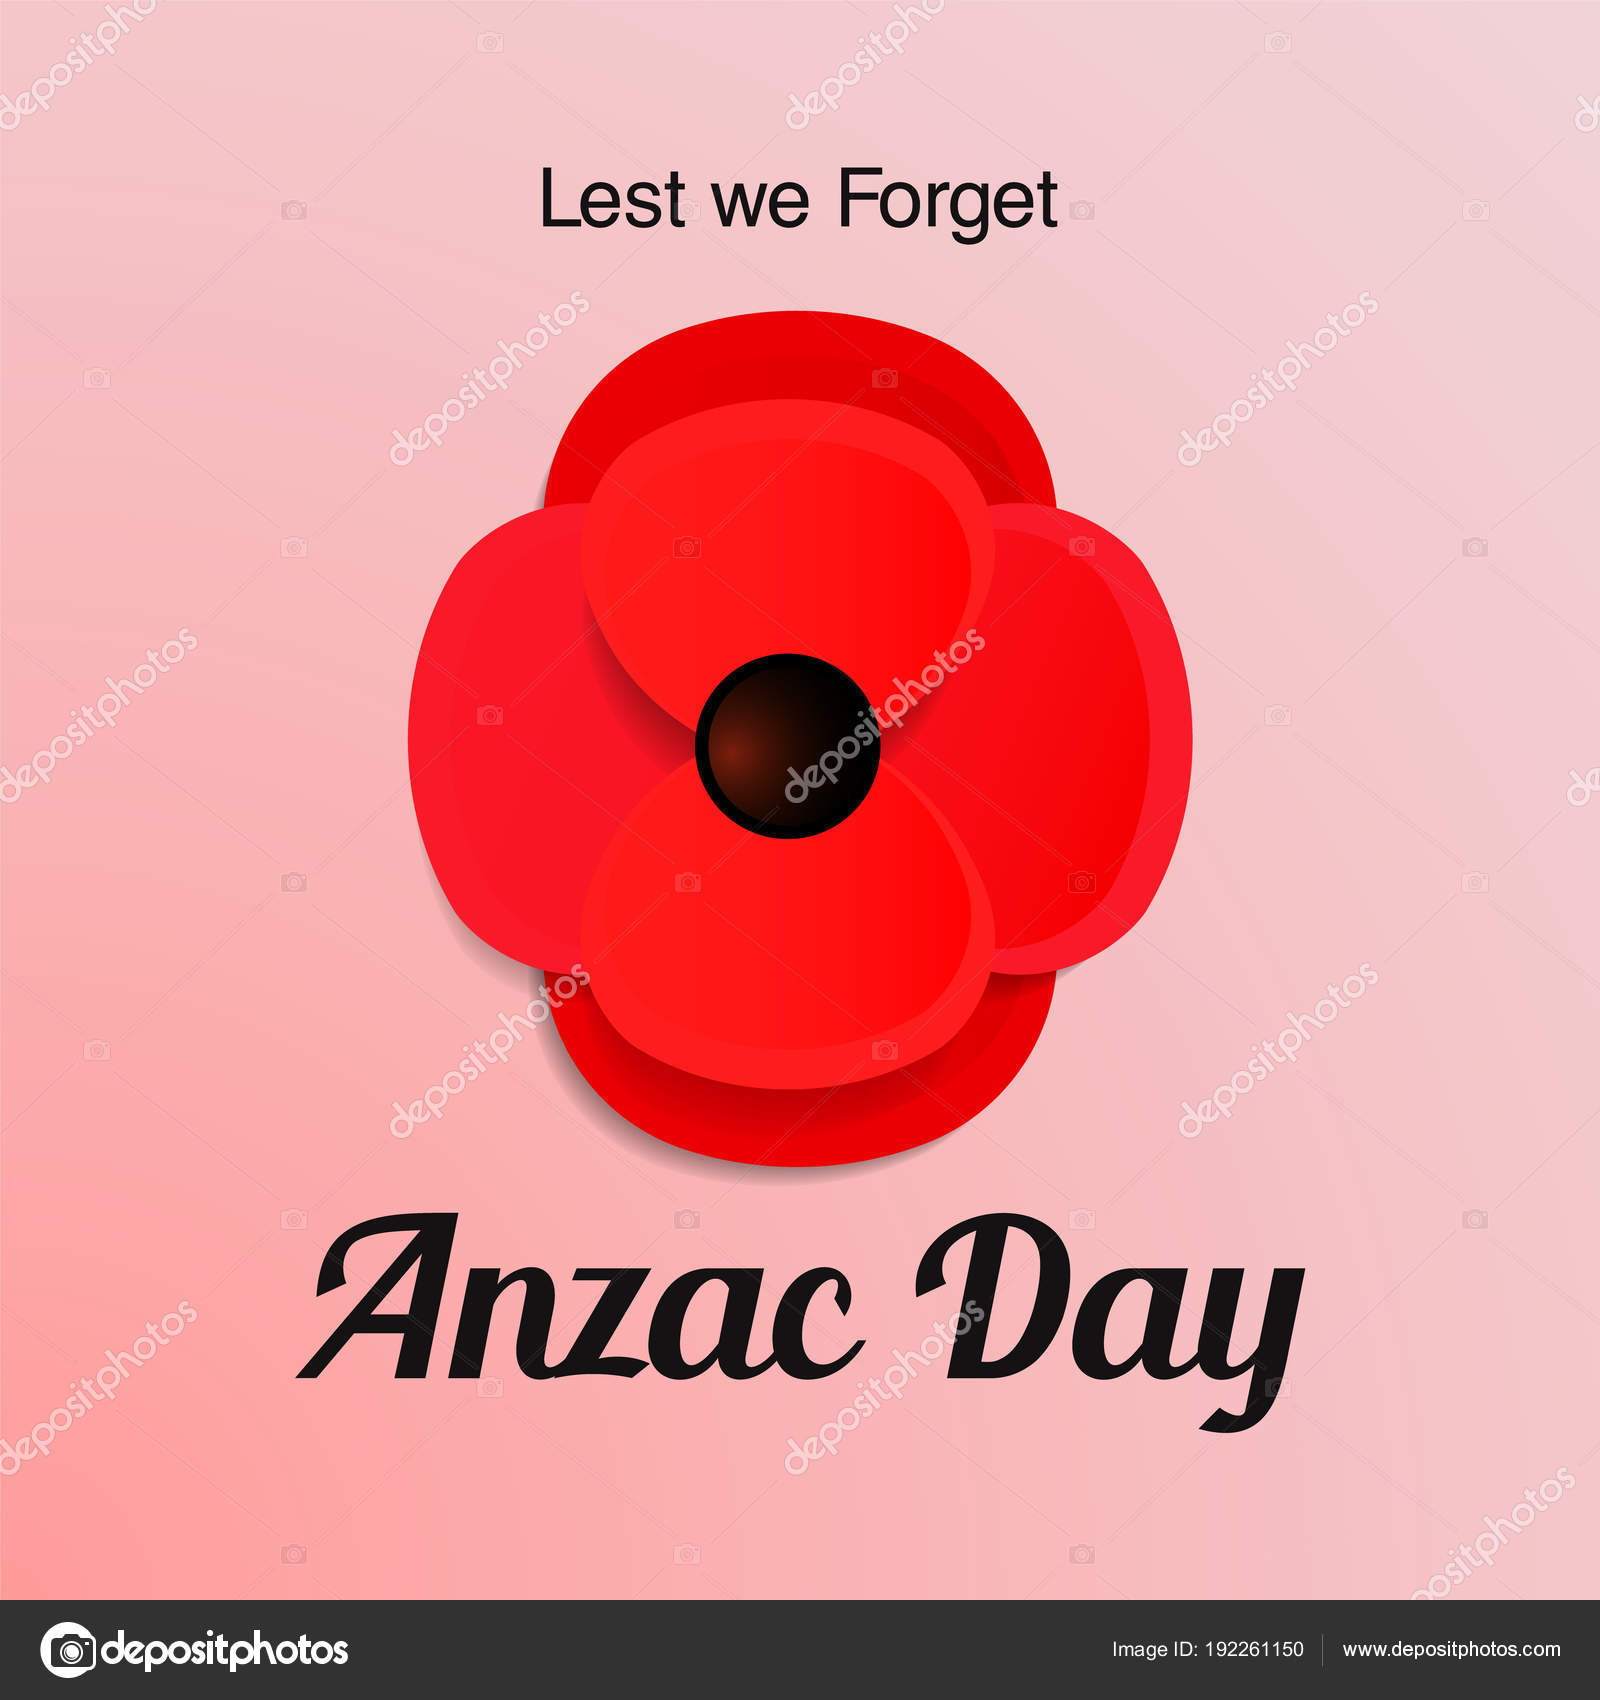 Anzac day vector card paper cut red poppy flower stock vector paper cut red poppy flower remembrance day symbol of peace lest we forget vector illustration eps 10 file vector by julsdumanskaail mightylinksfo